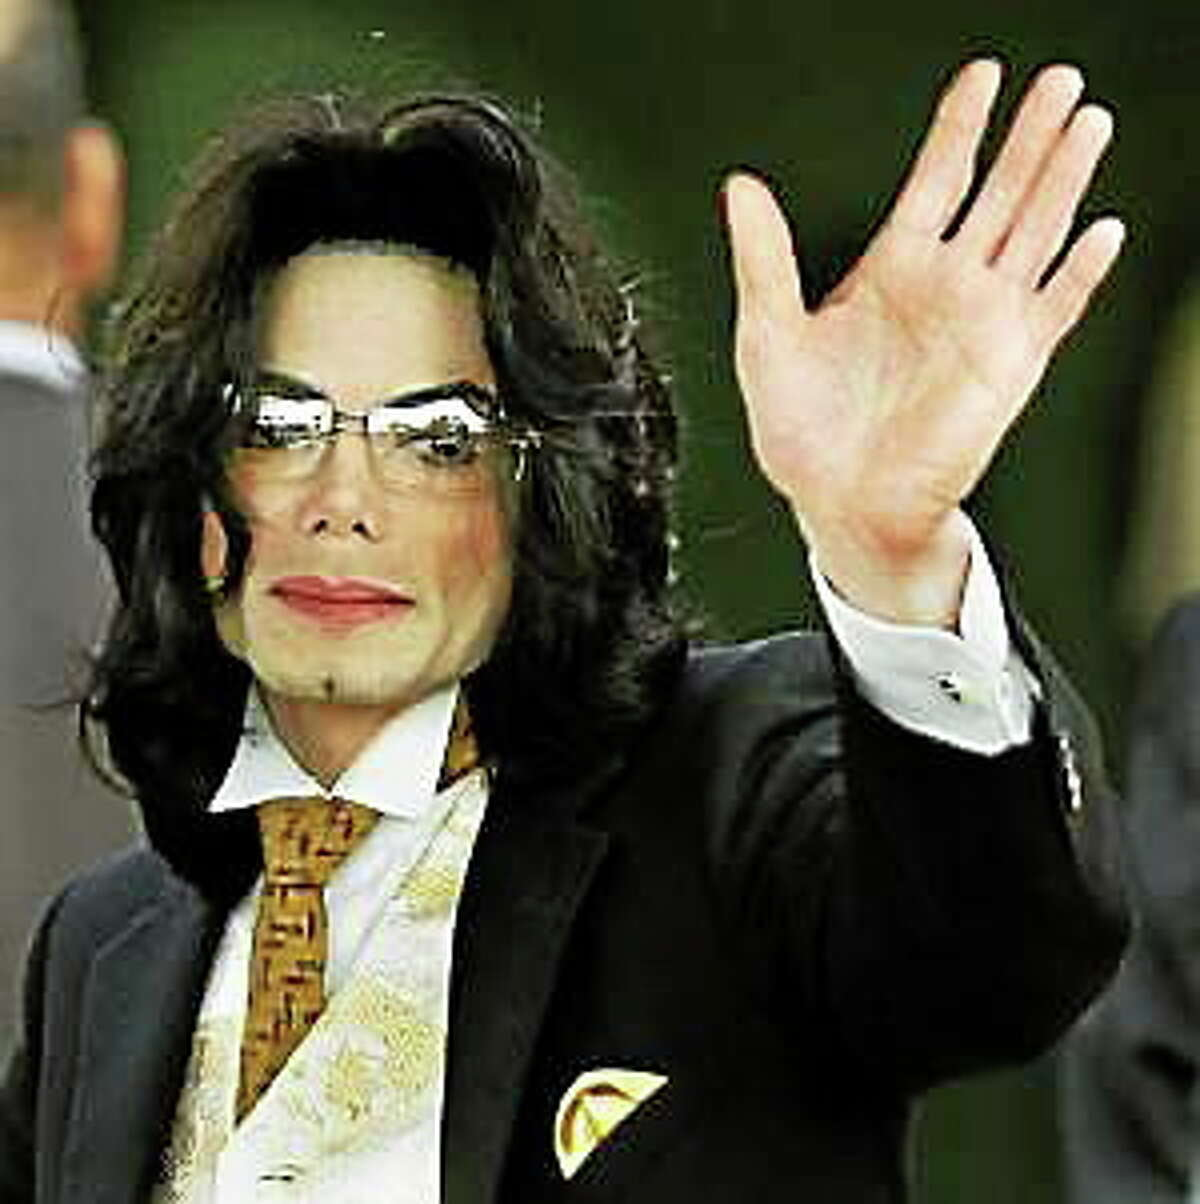 Michael Jackson waves as he arrives at the Santa Barbara County courthouse on June 3, 2005, in Santa Maria, California.